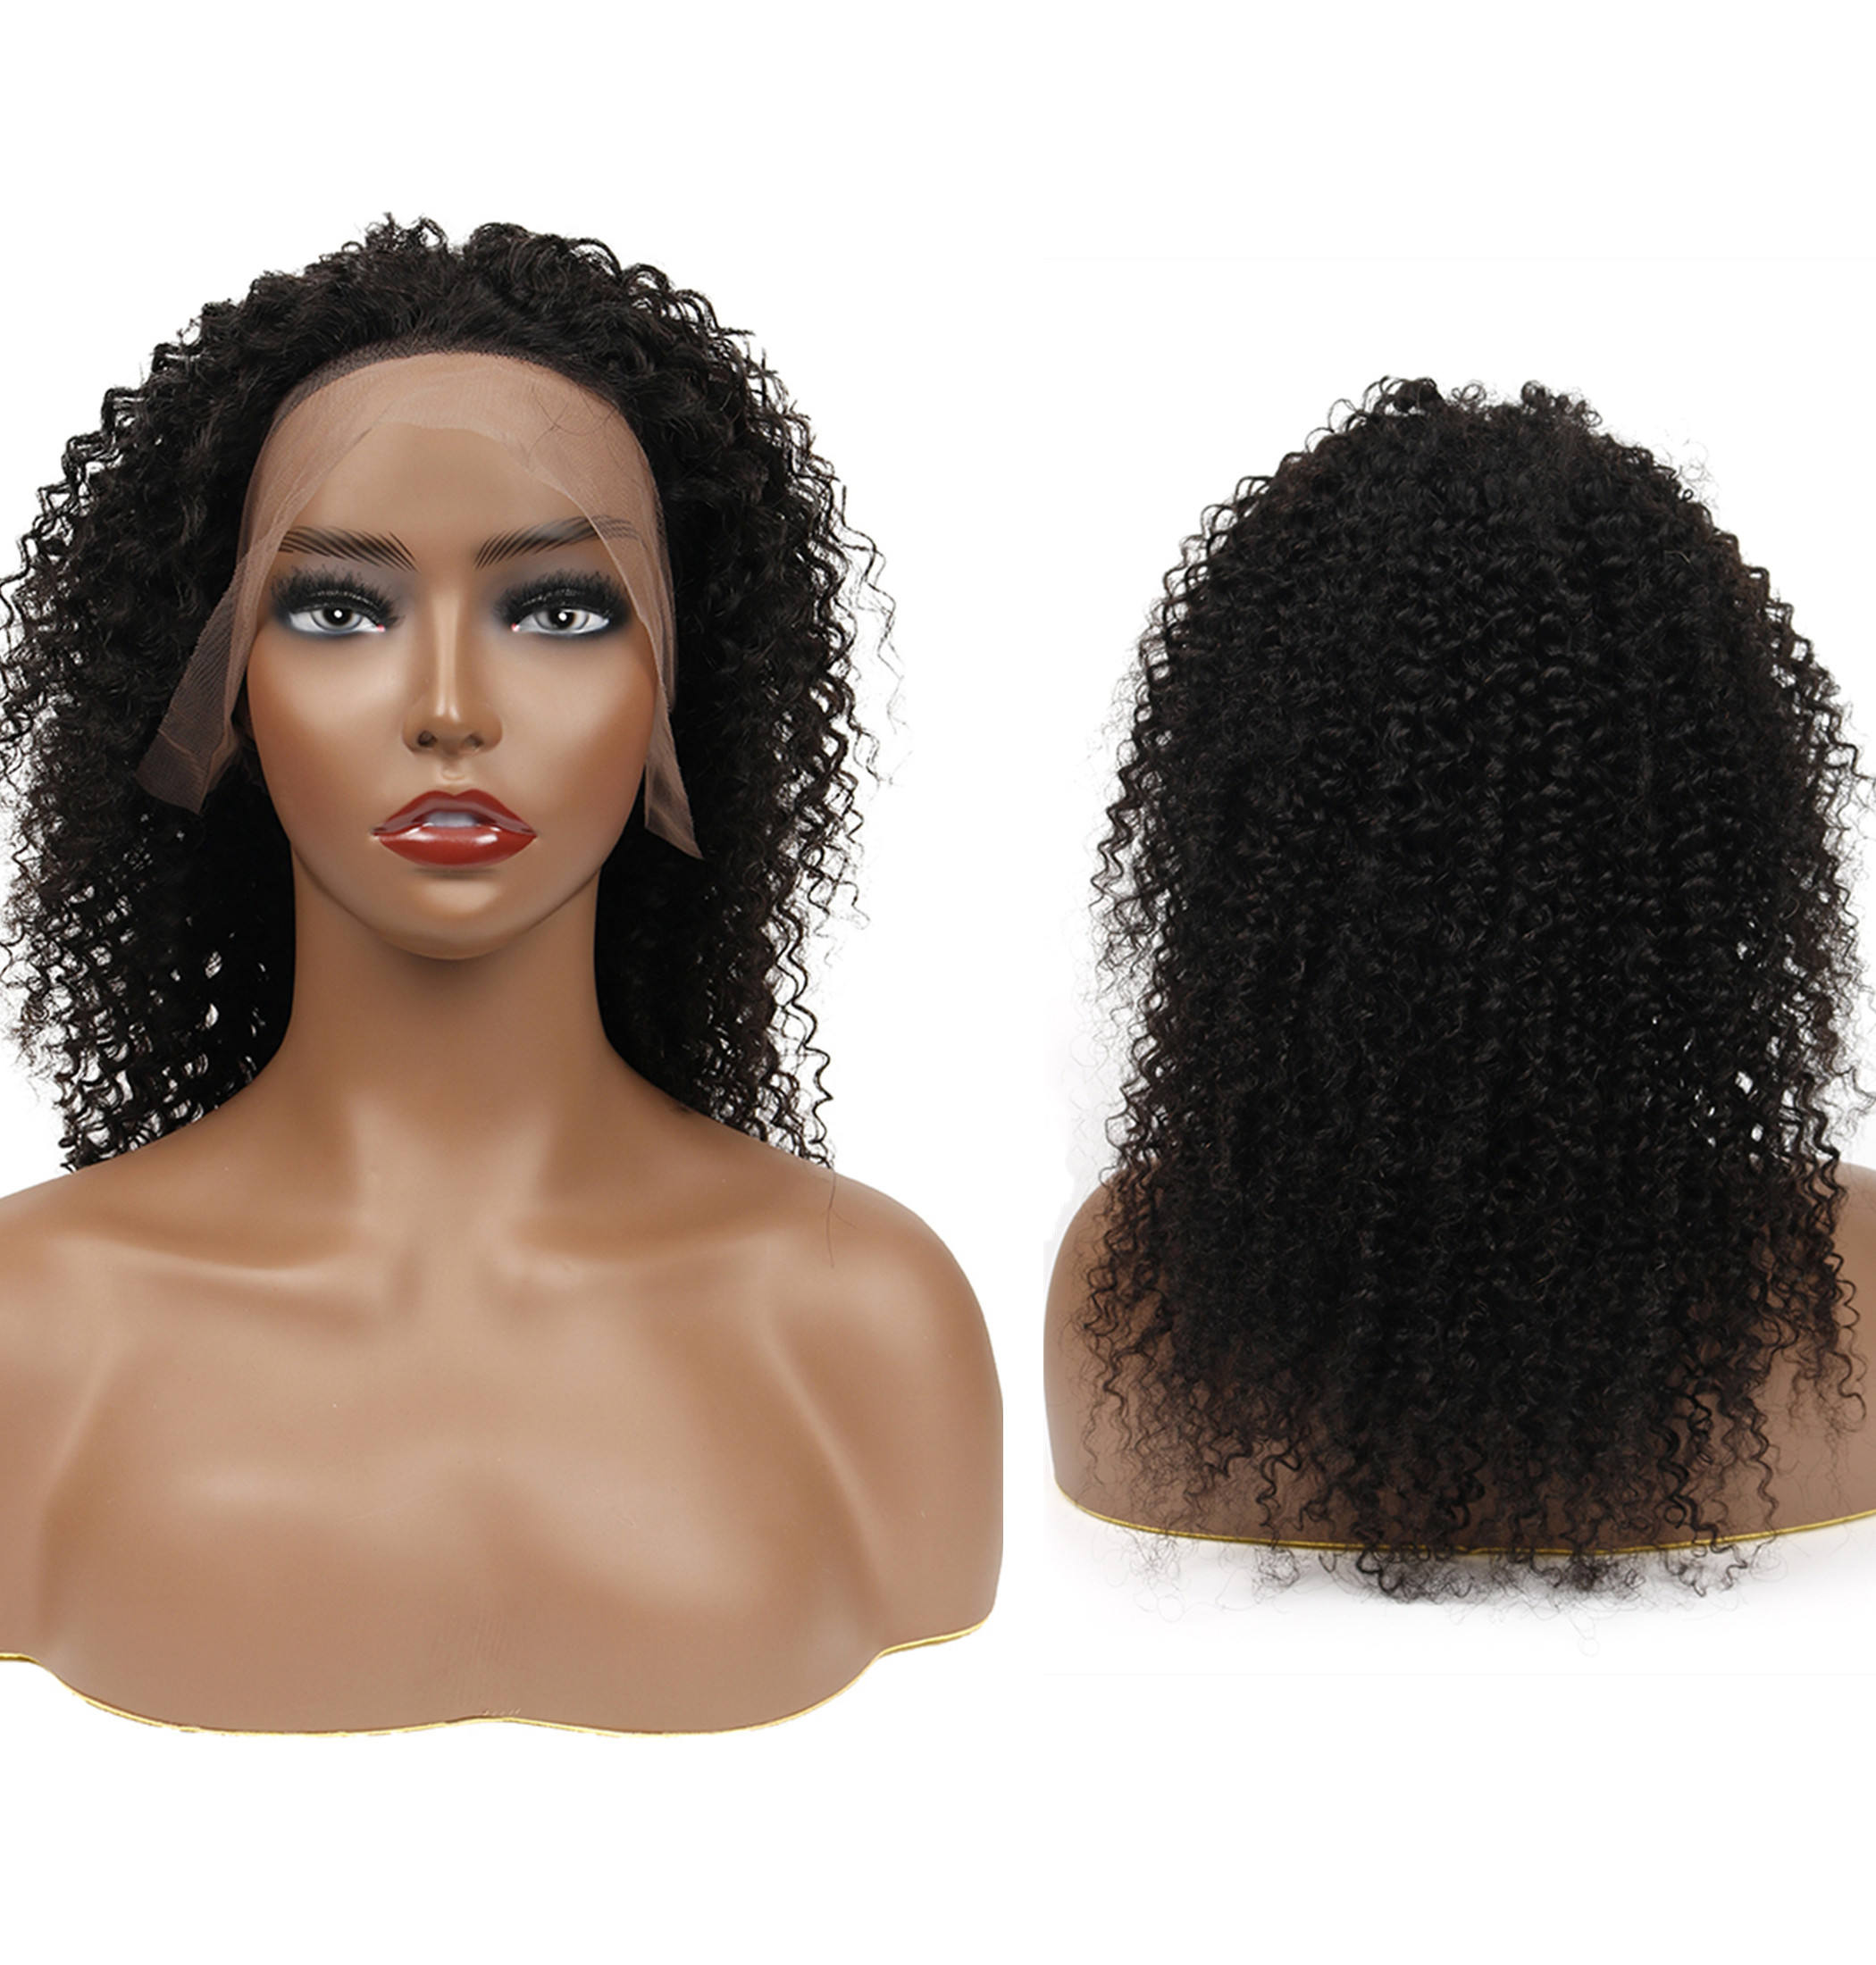 Cuticle Aligned Bulk Virgin Remy Celebrity Free Samples 36 Inch Curly Raw Indian Lacefront Afro Kinky Human Hair Wig